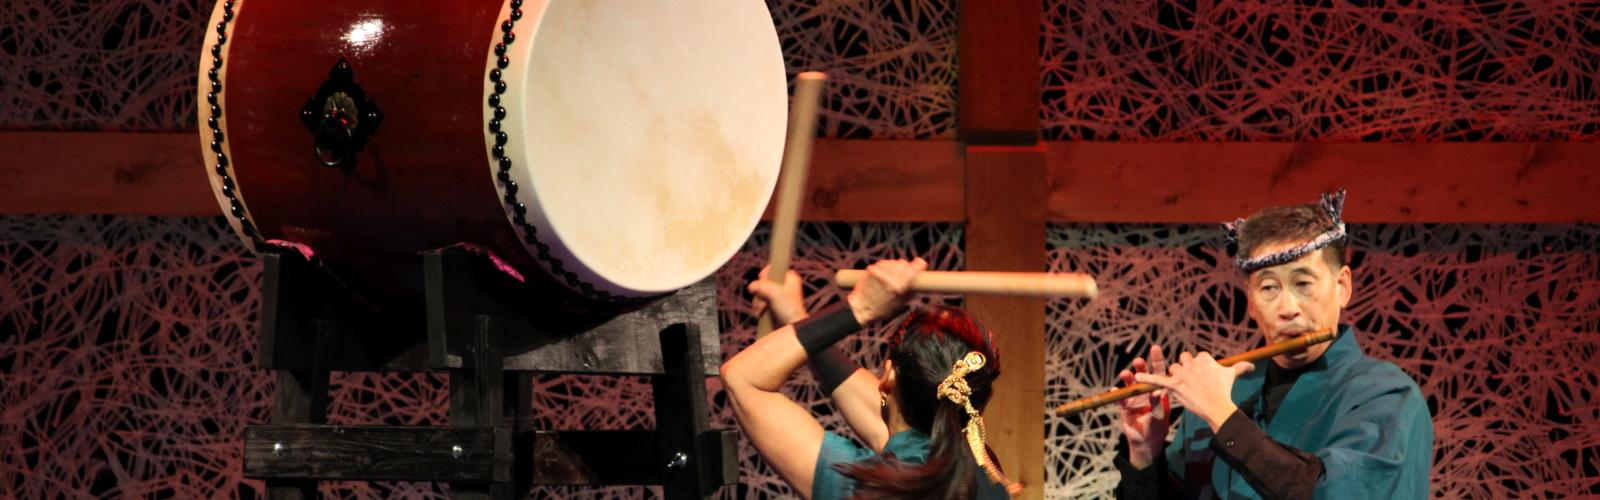 Woman banging a large drum while man plays flute on stage.